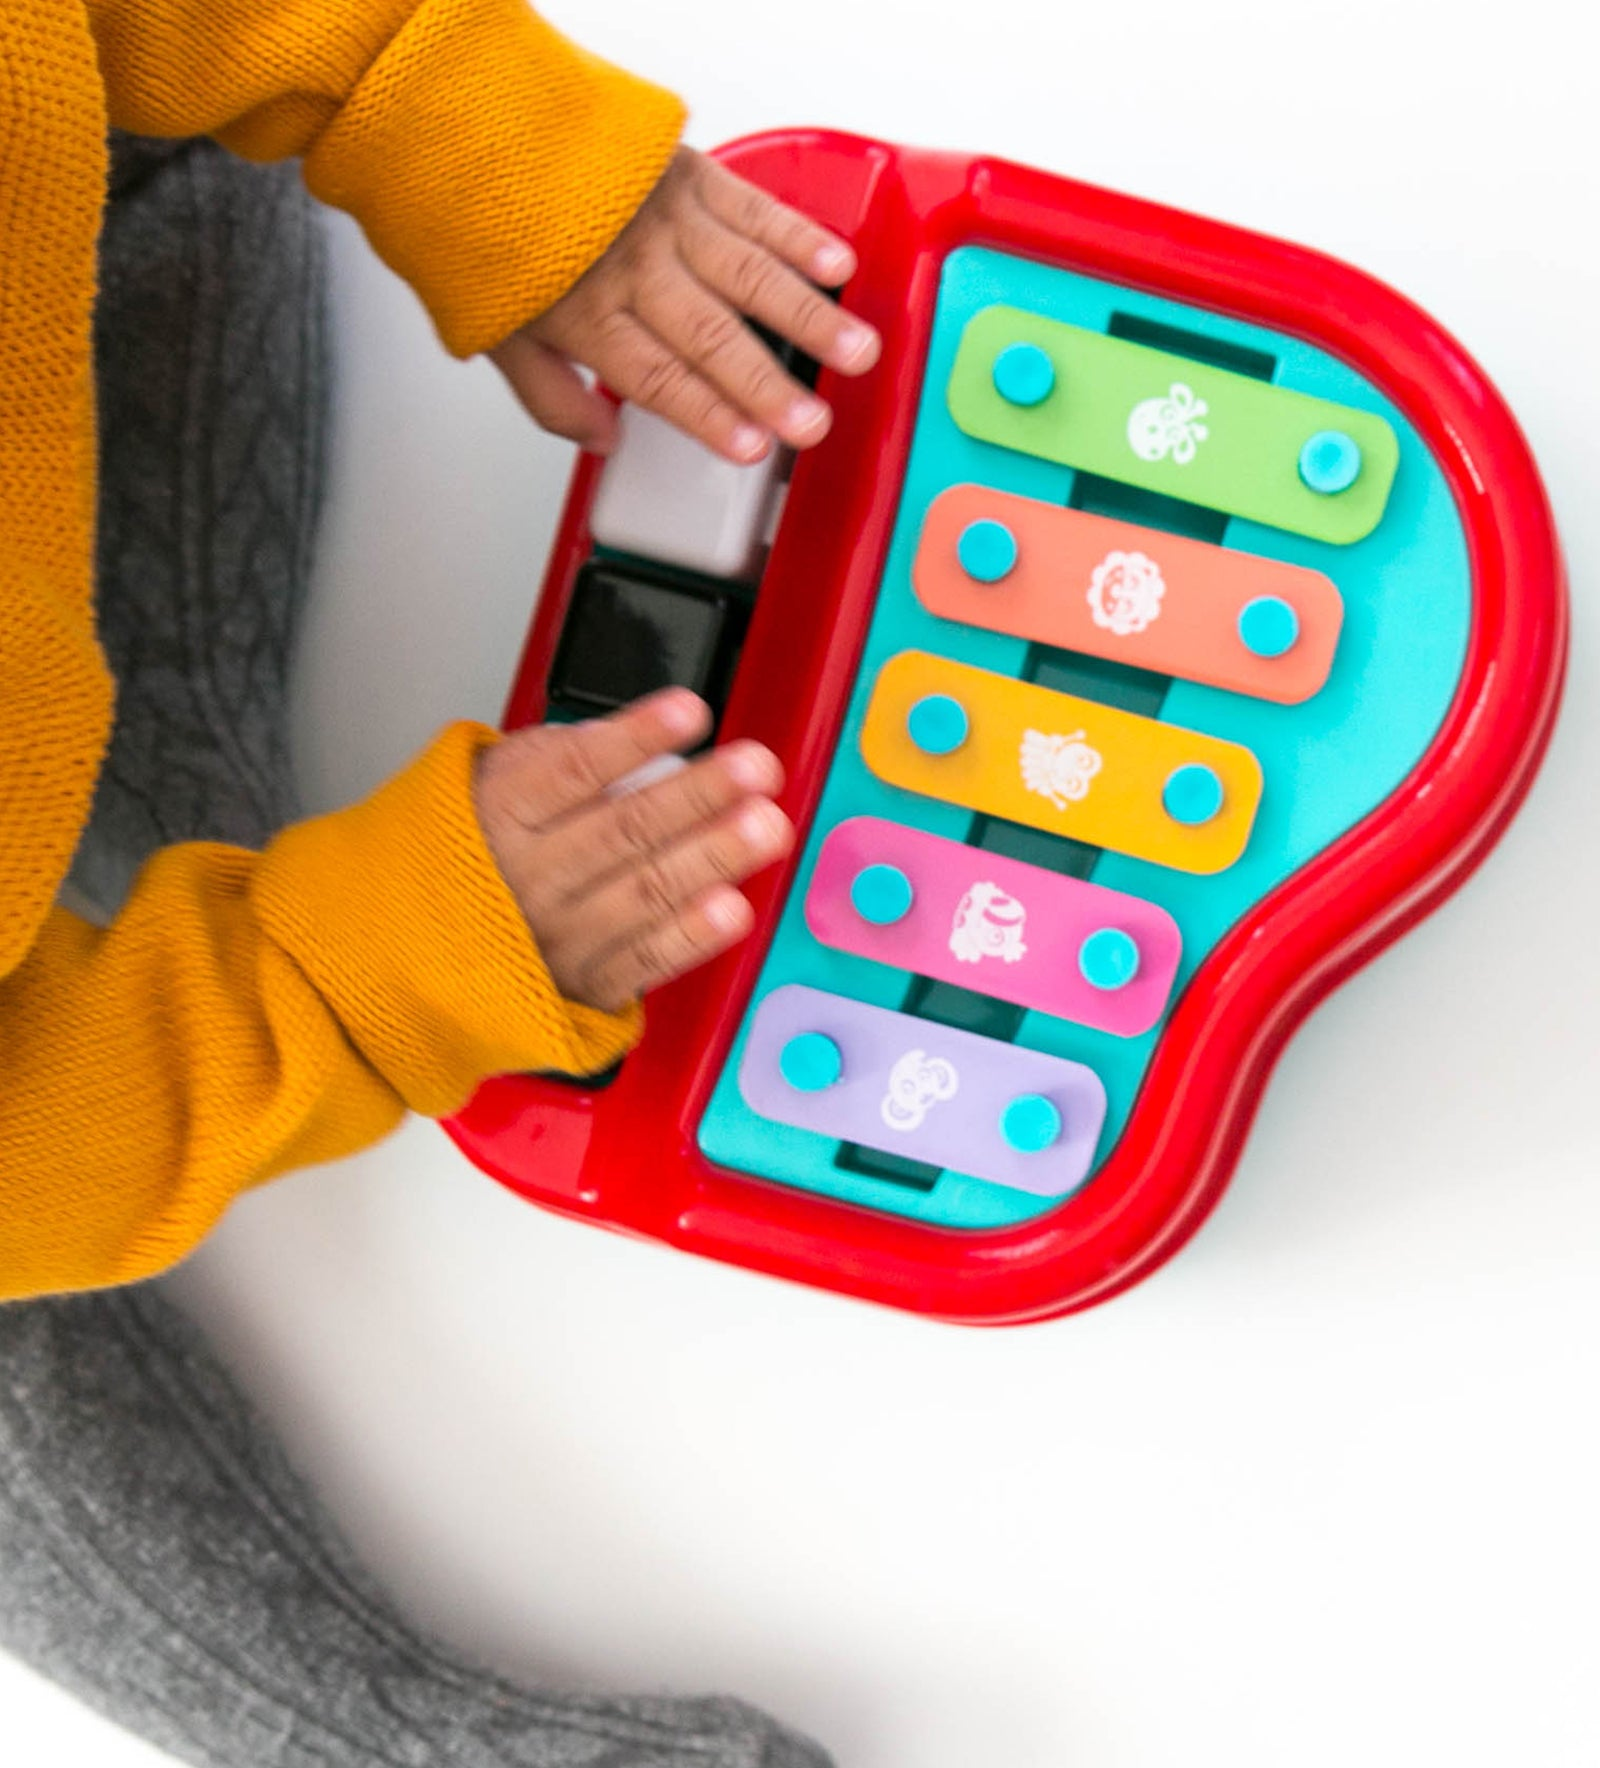 A toddler's hand wearing mustard color long sleeve is playing the Playgro Xylophone musical toy